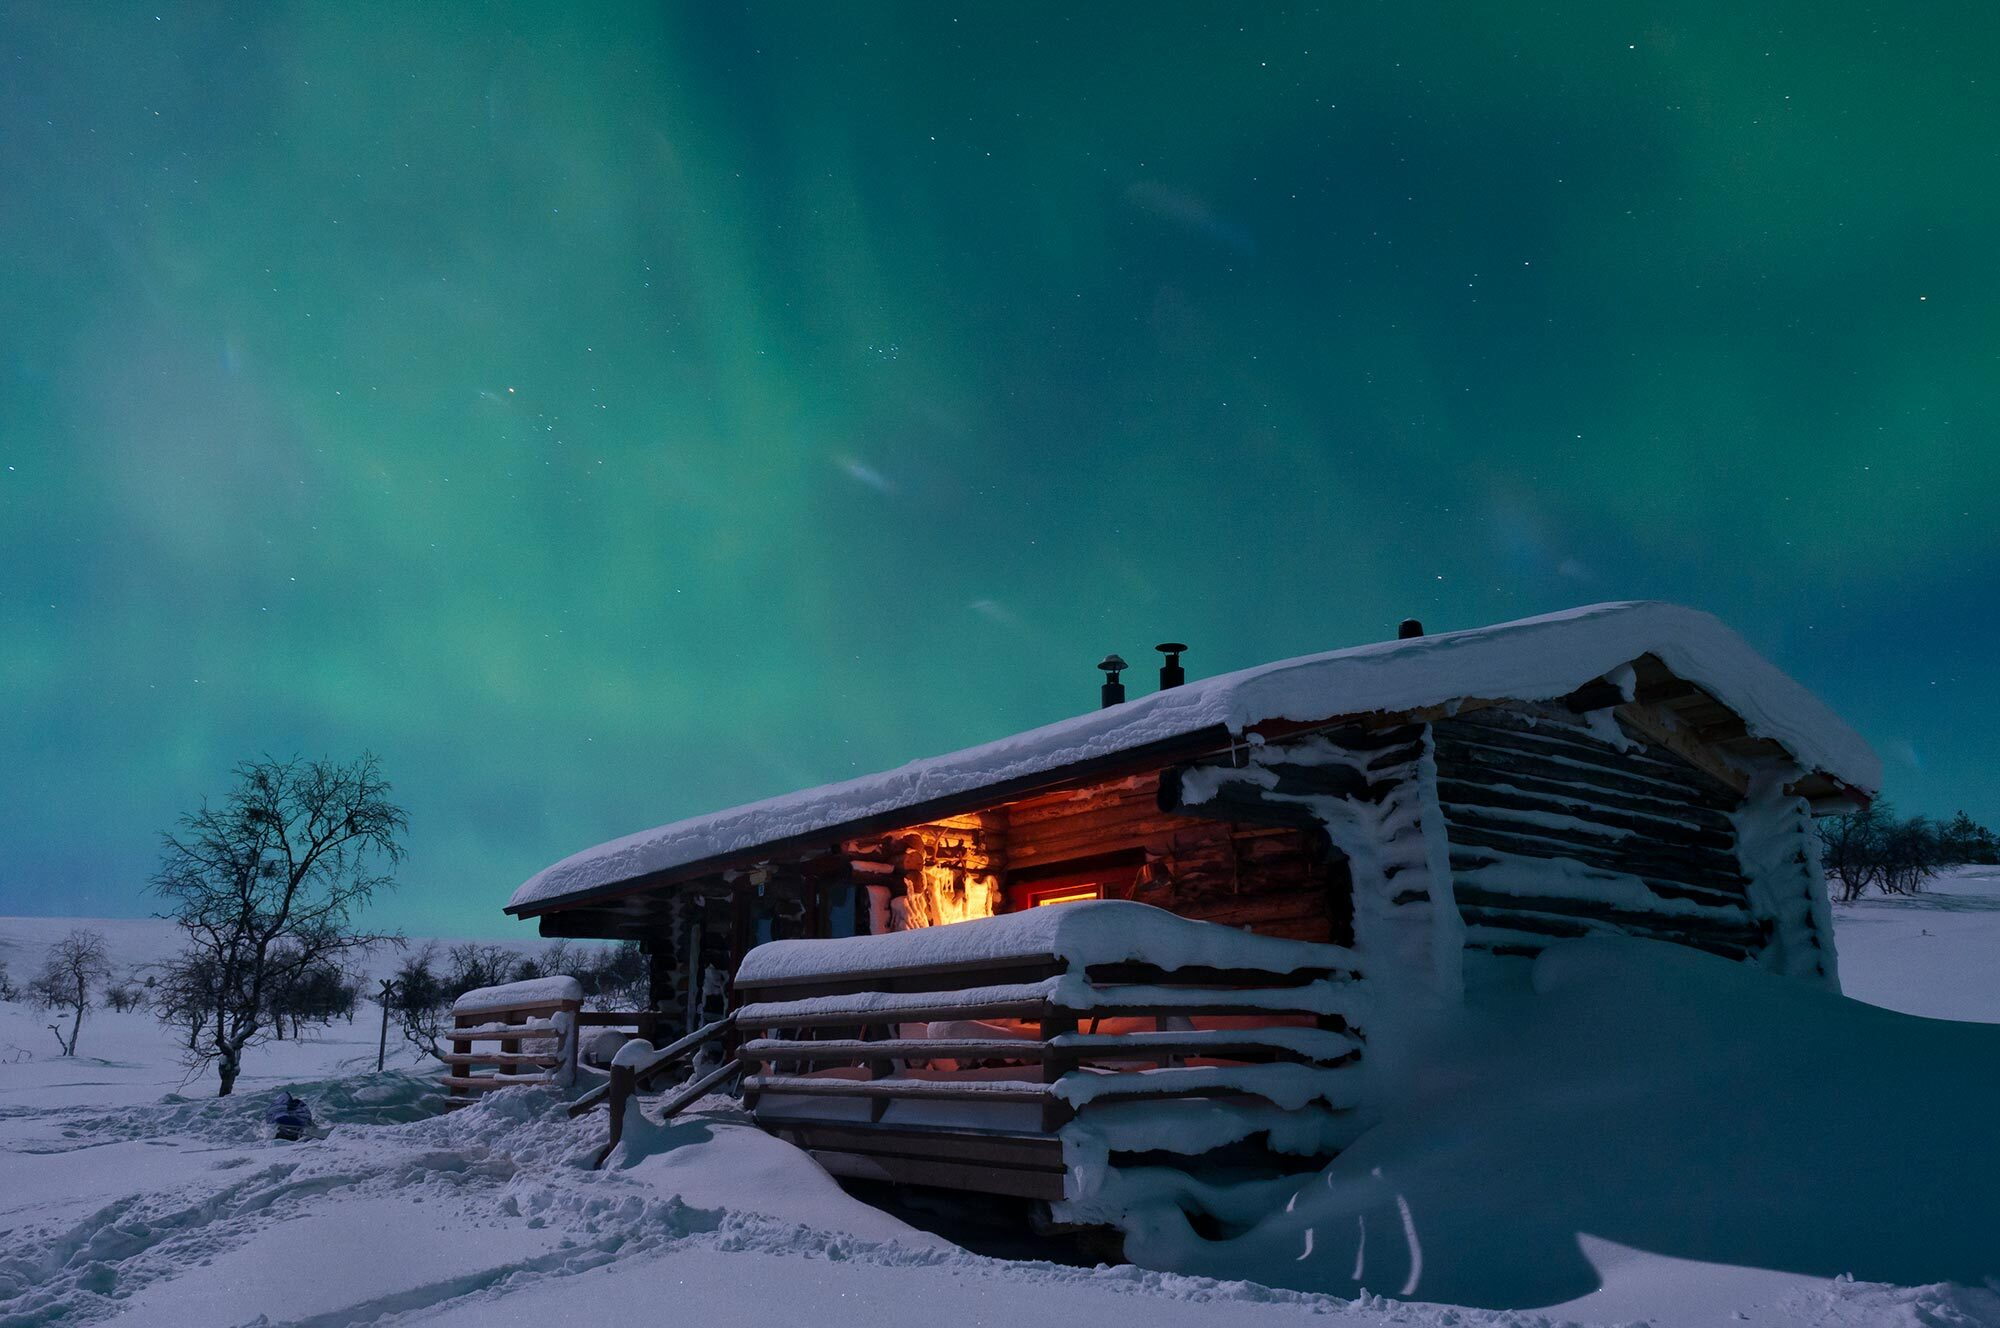 Northern lights over the cottage